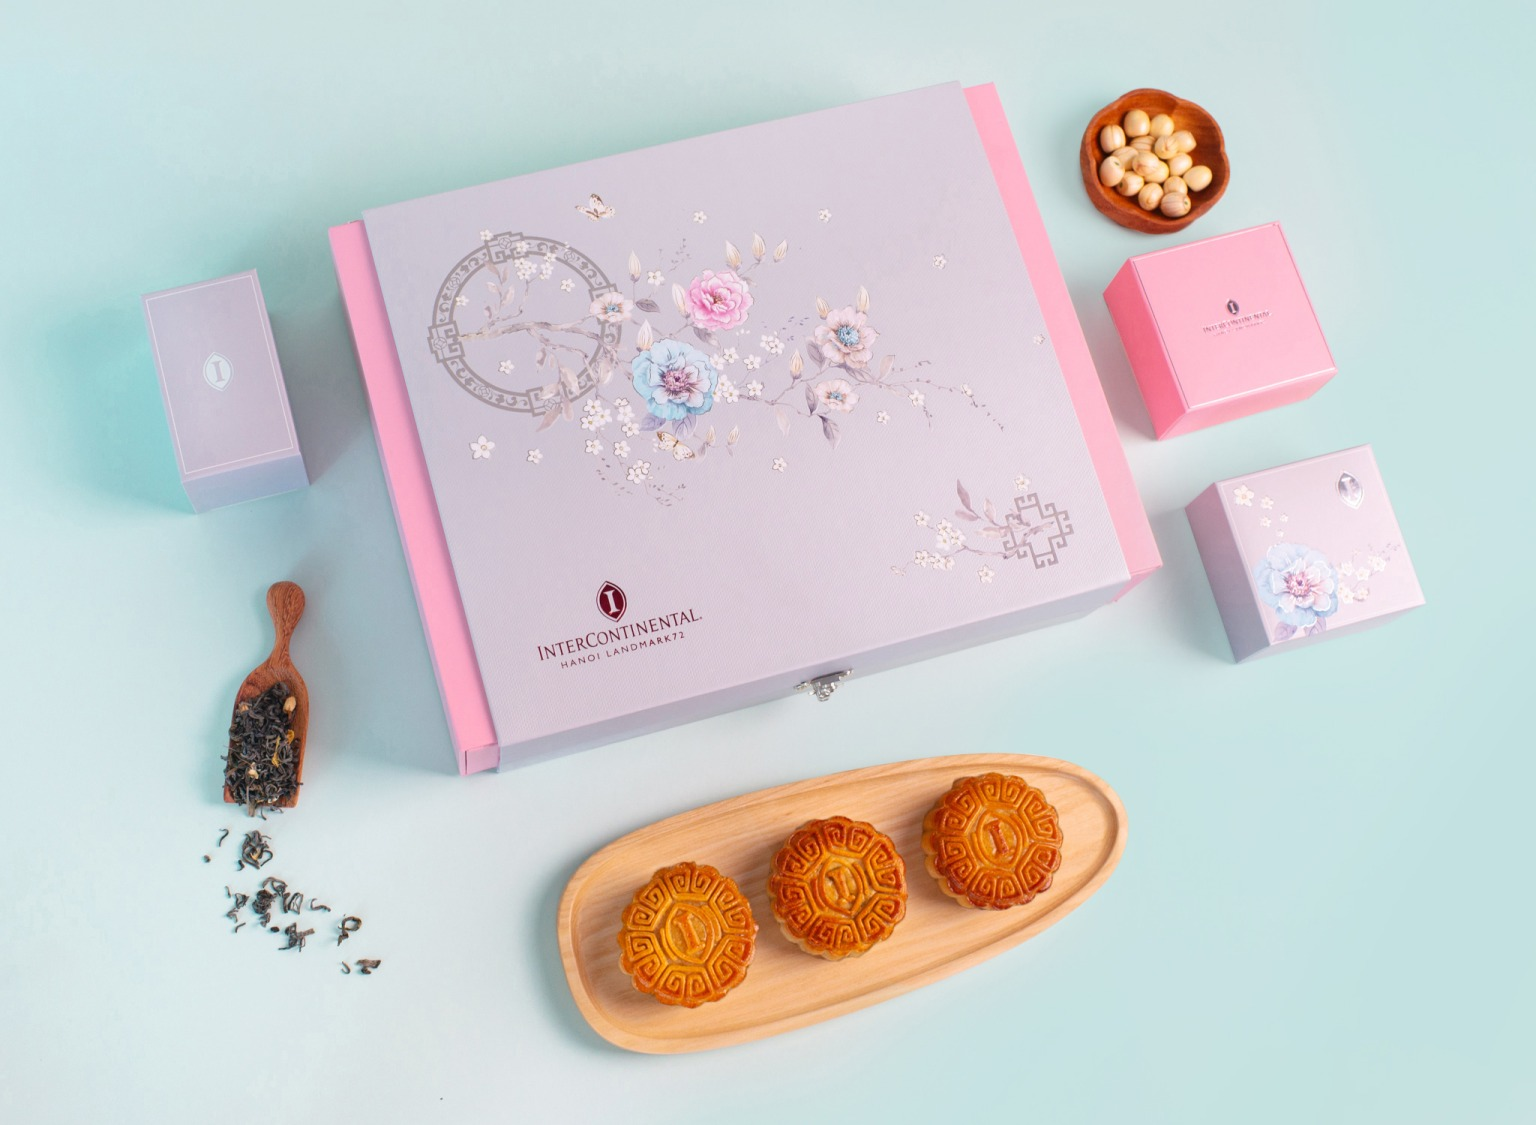 luxury mid-autumn festival gift for family, friends, business partners